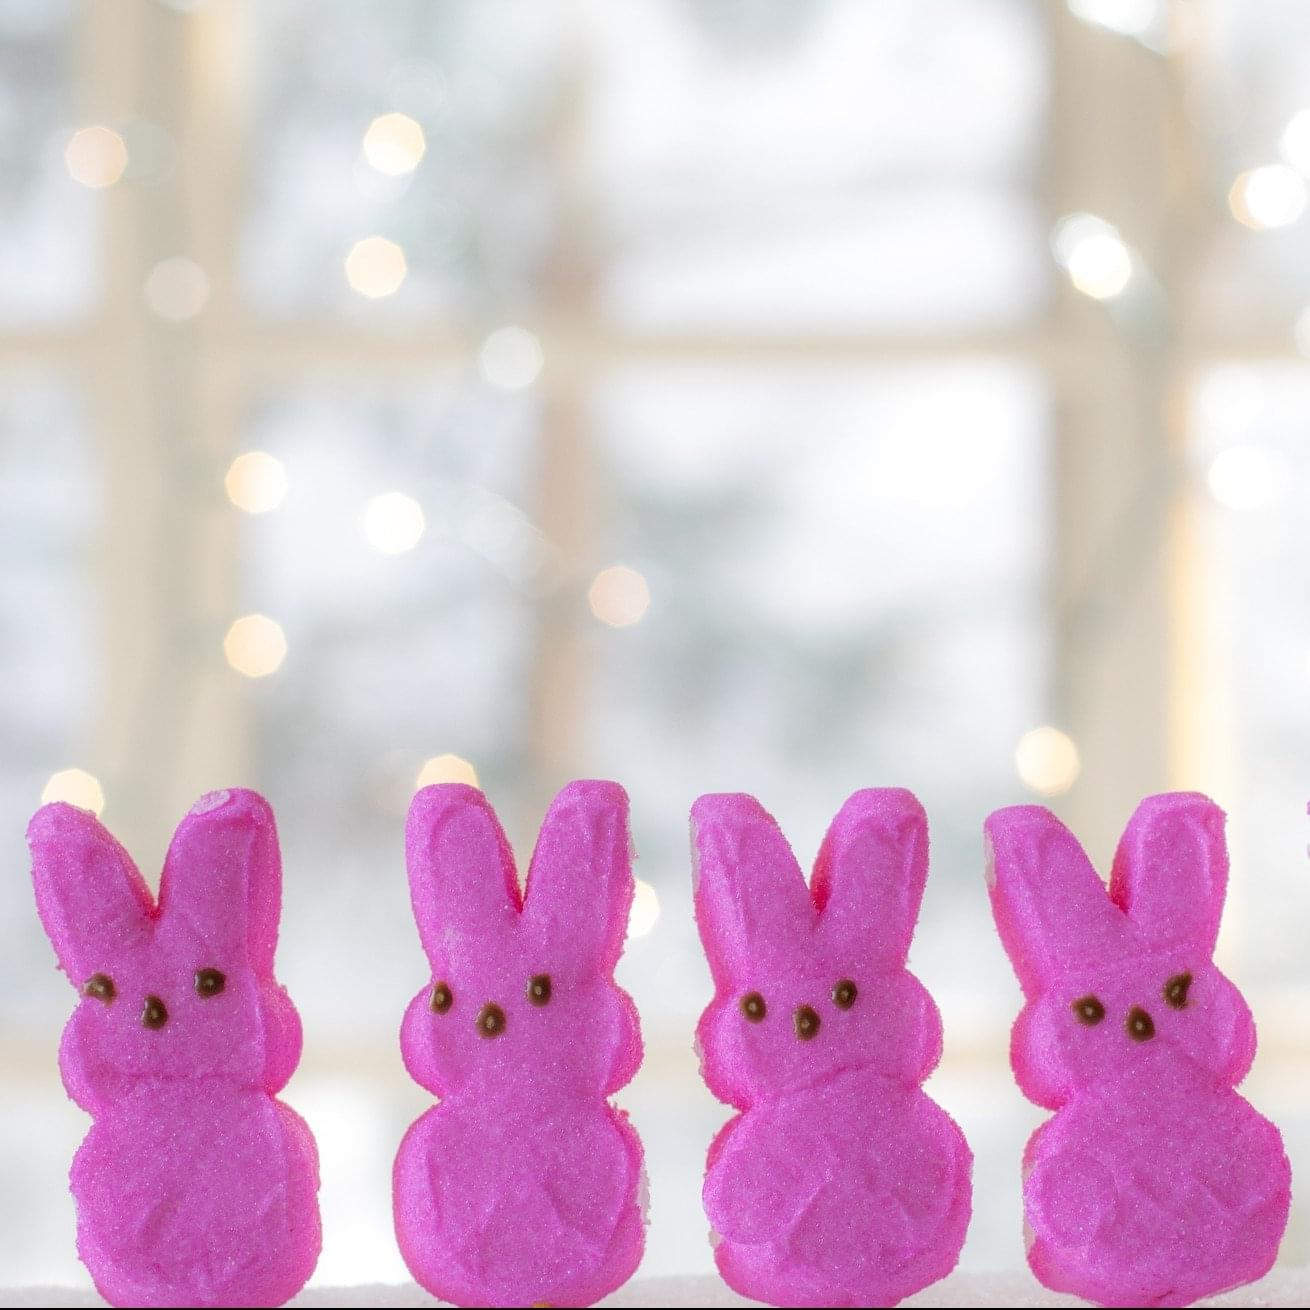 Will we have Peeps this Easter?